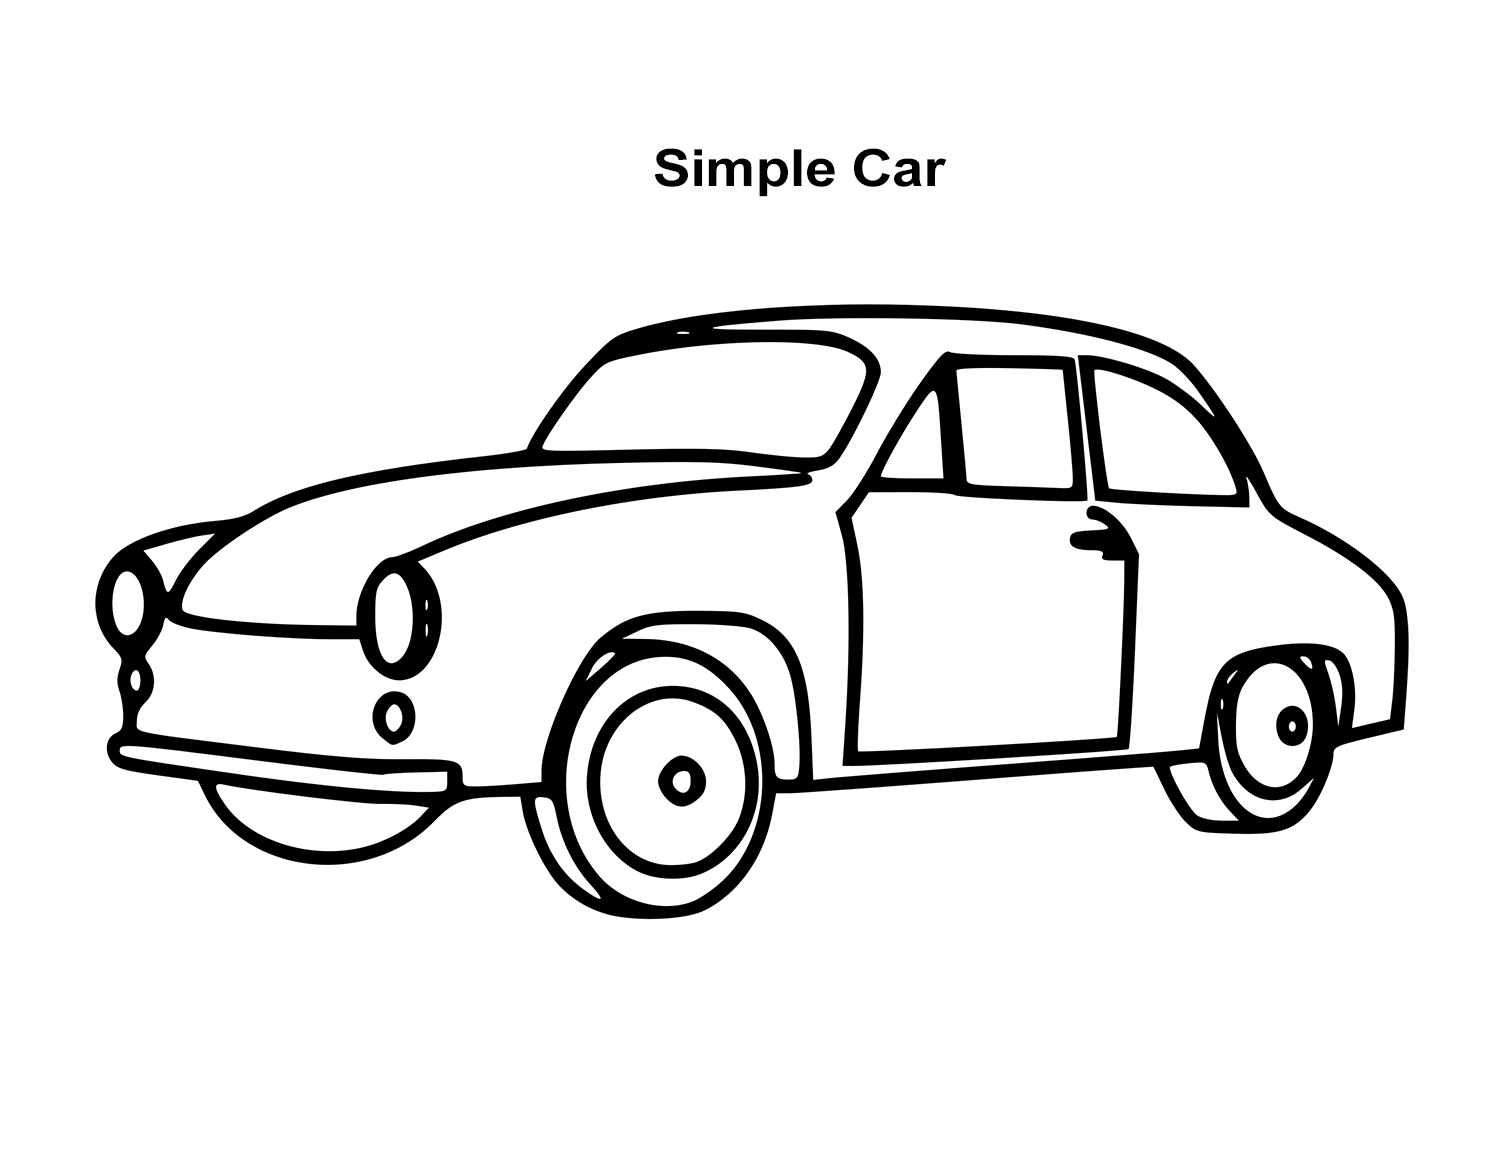 car colouring images 10 car coloring sheets sports muscle racing cars and images colouring car